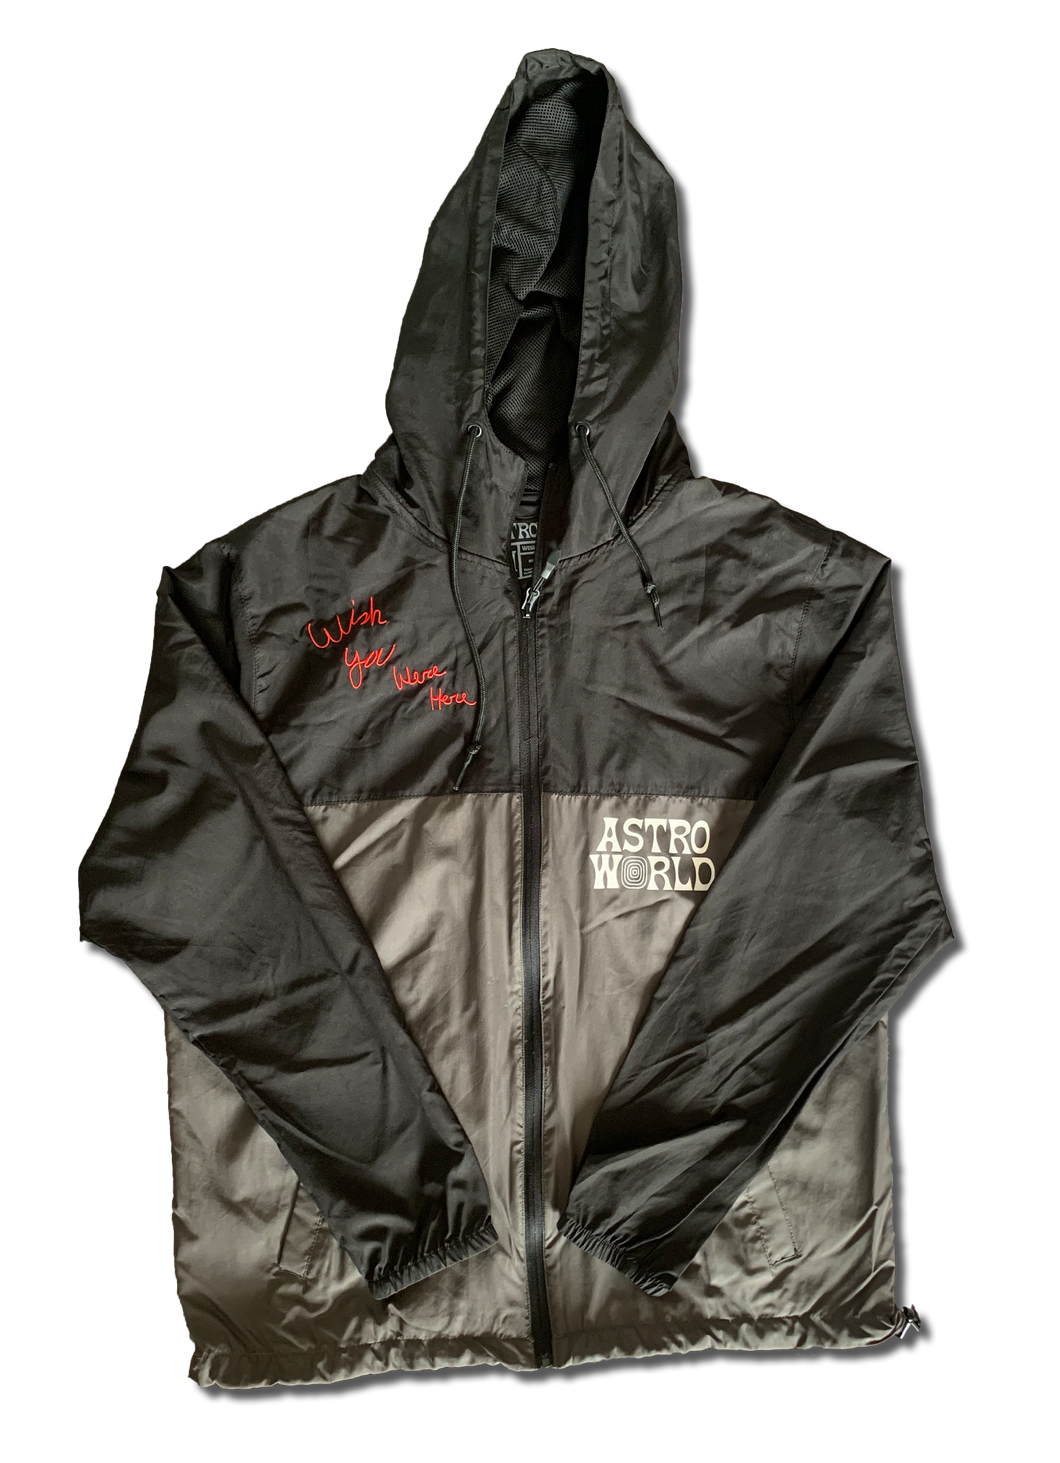 Travis Scott Astroworld Tour Windbreaker